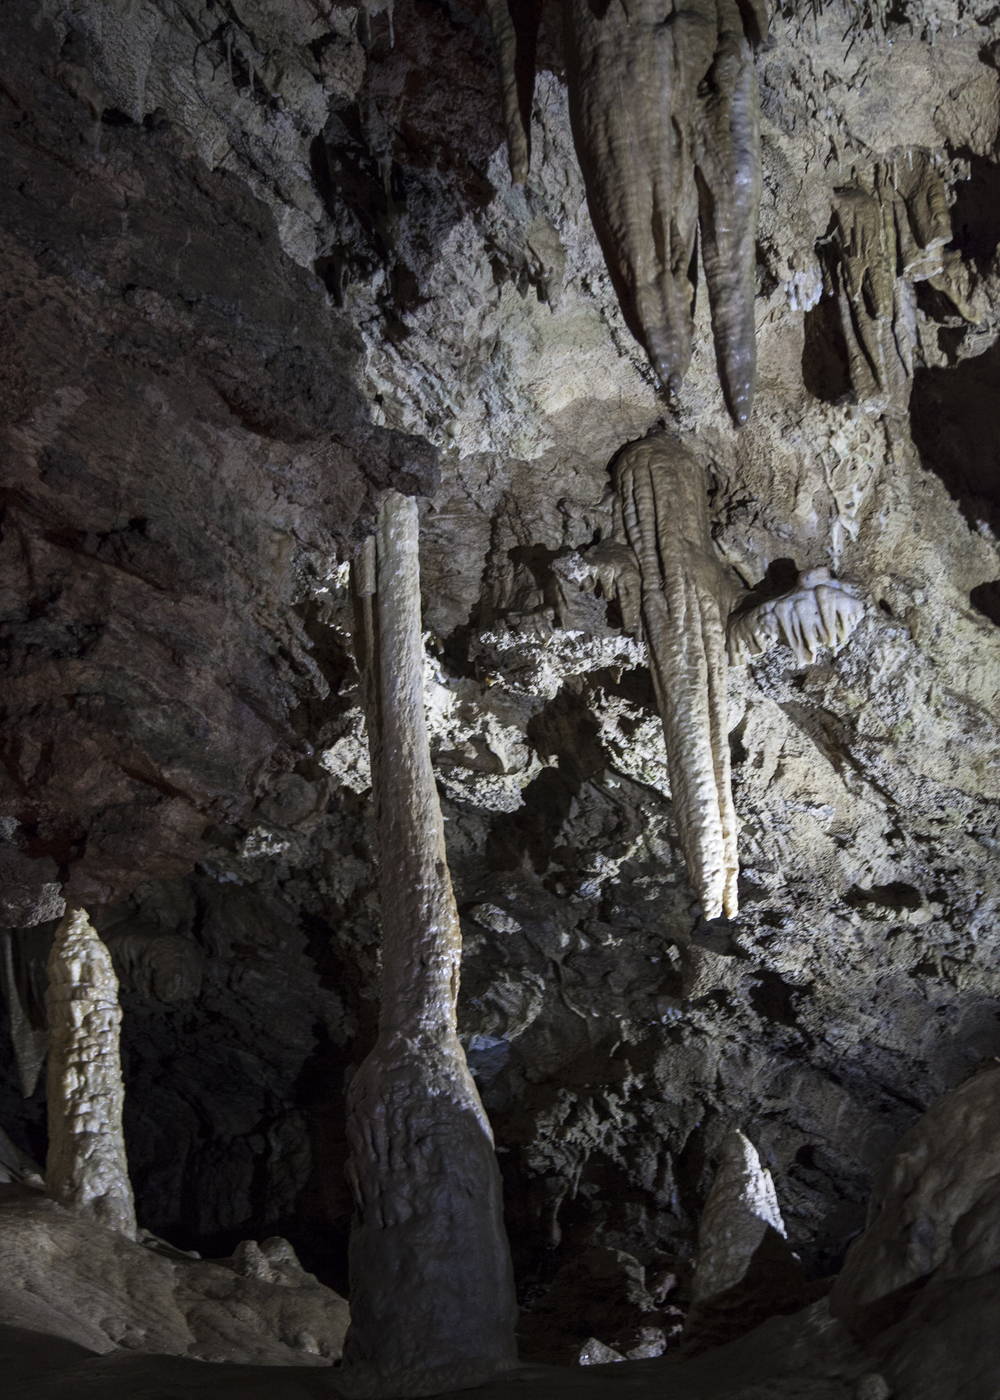 Stalactites, stalagmites, and ones that had joined to form complete columns.